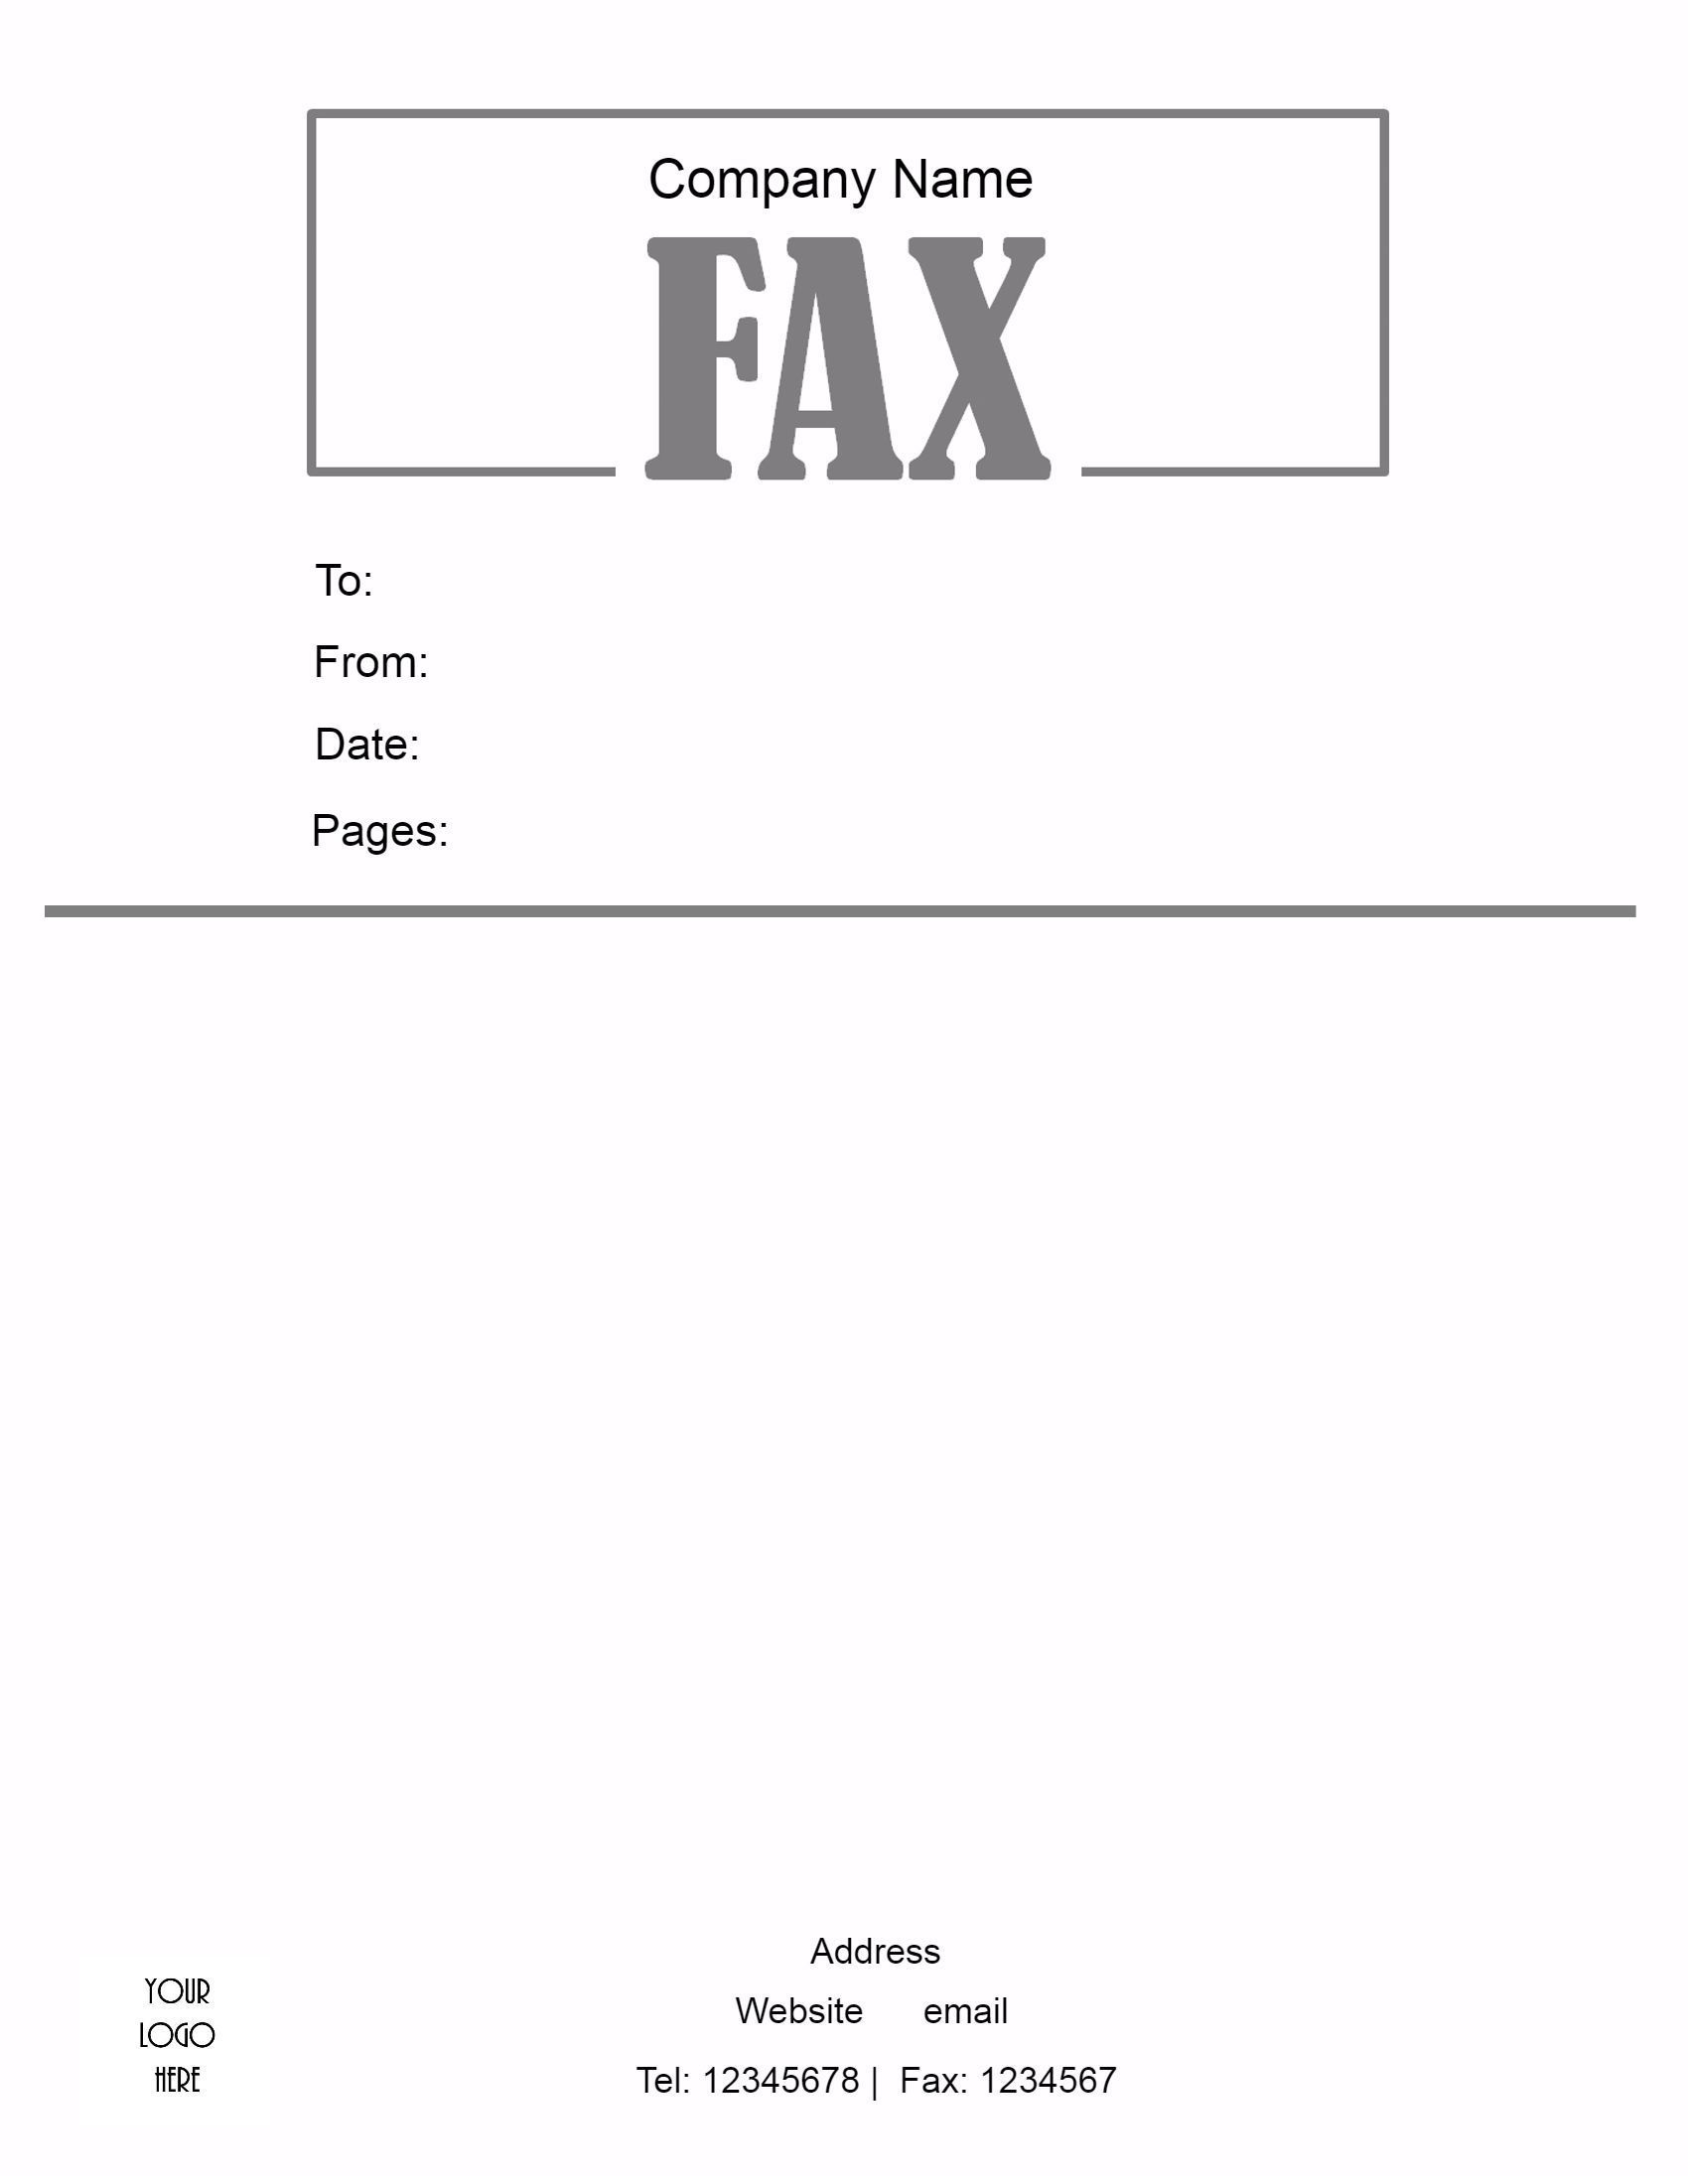 free fax cover sheet template format example pdf printable fax